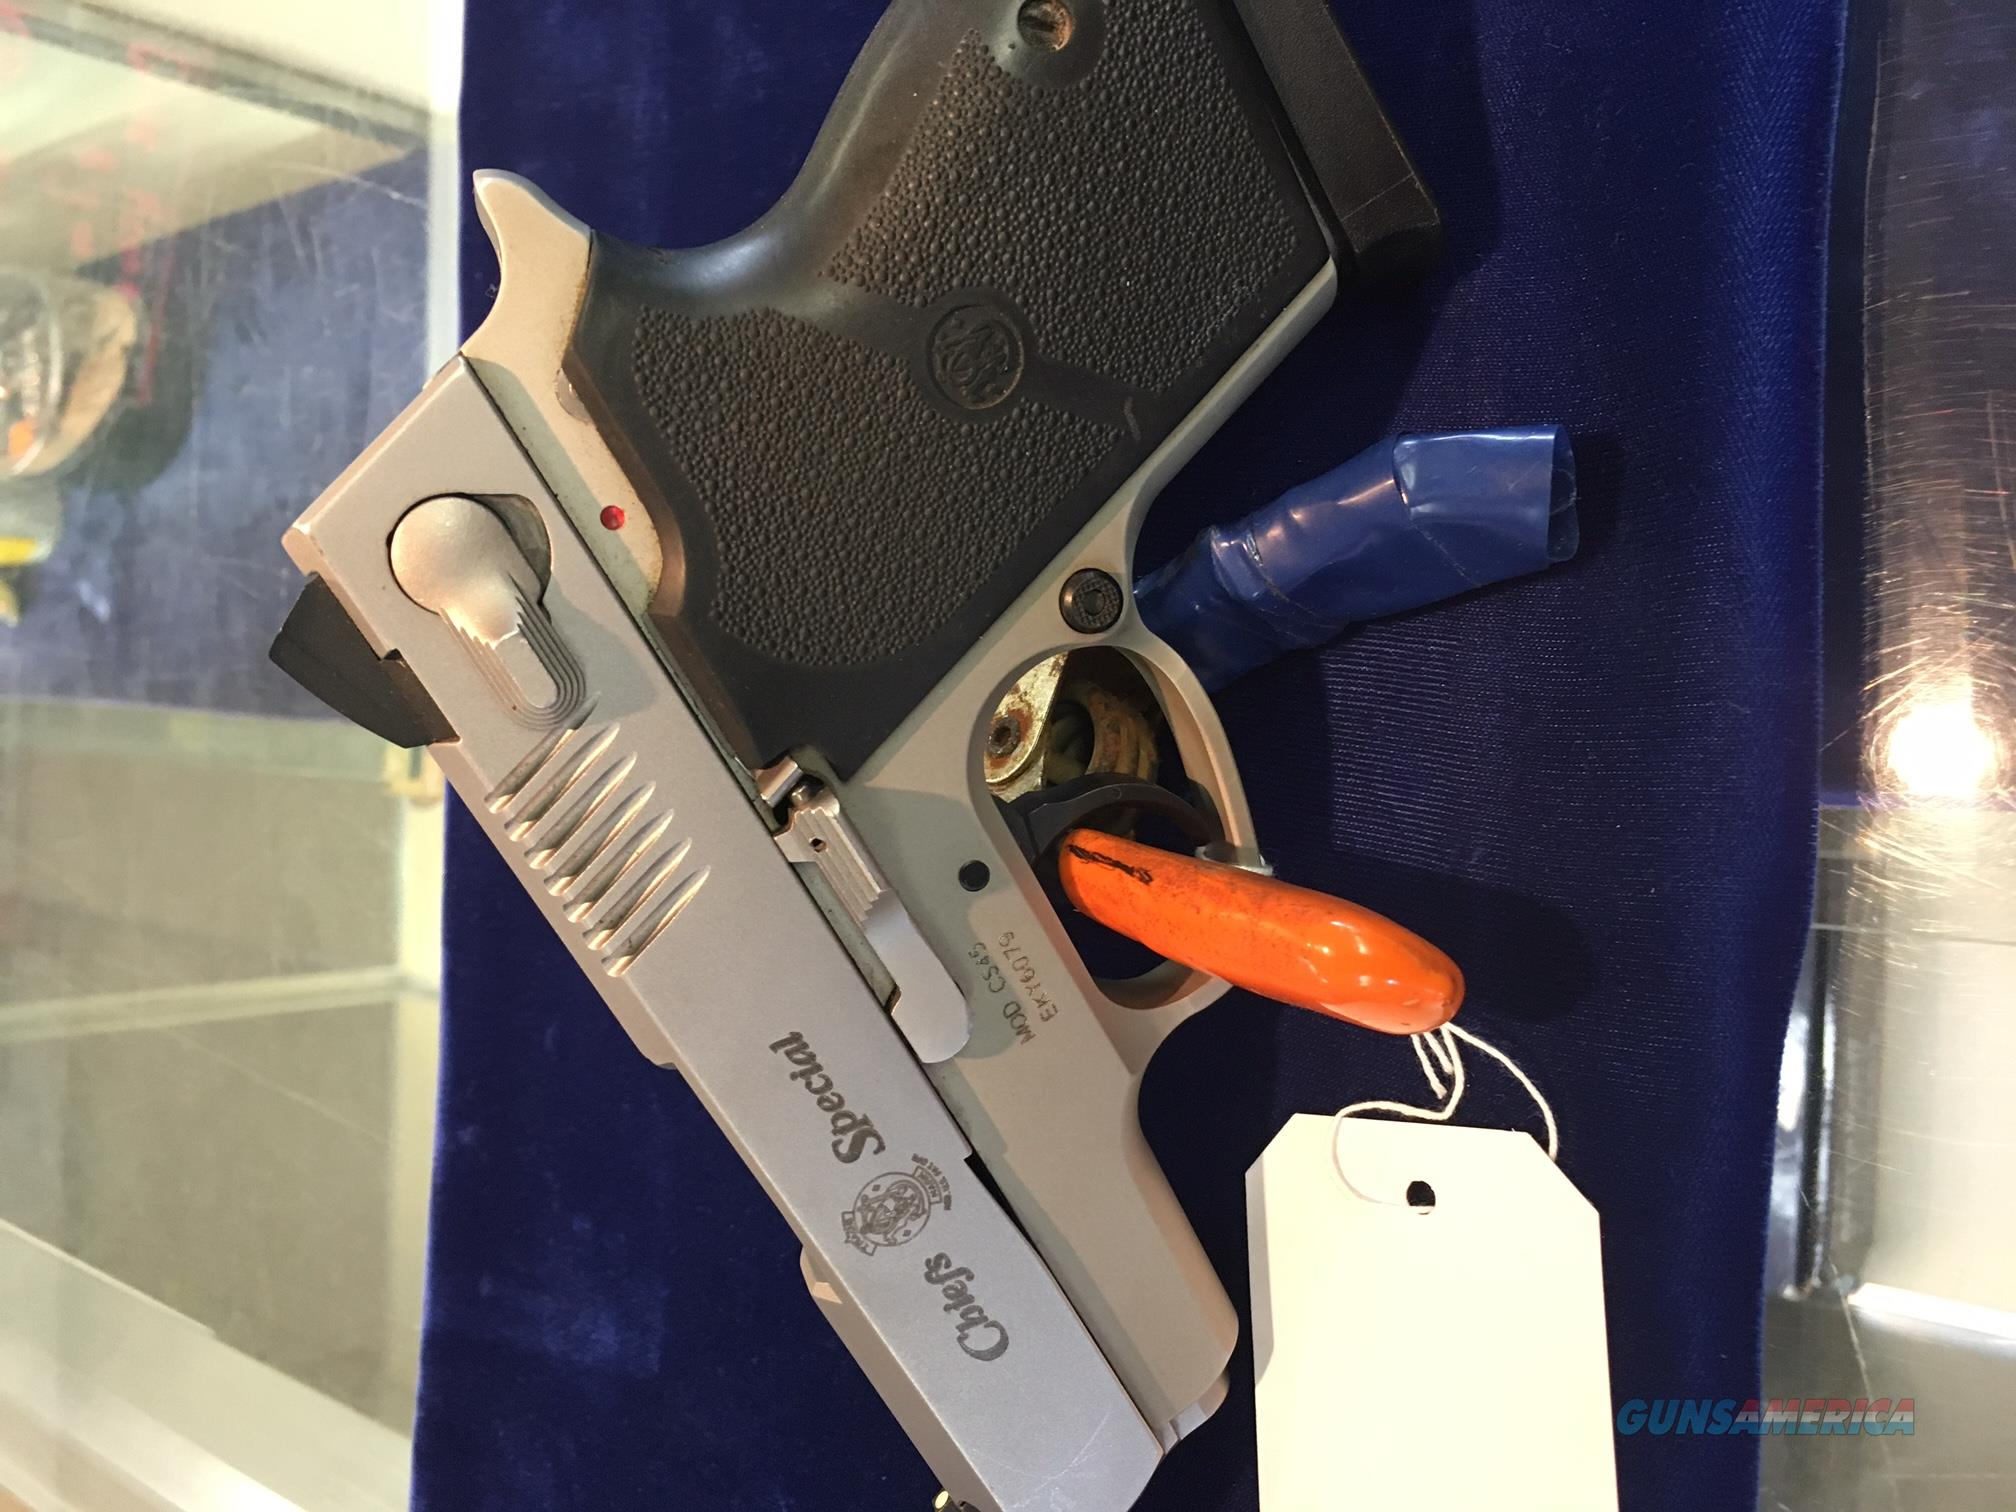 Stainless Steel 45 Smith and Wesson Chief's Special  Guns > Pistols > Smith & Wesson Pistols - Autos > Steel Frame